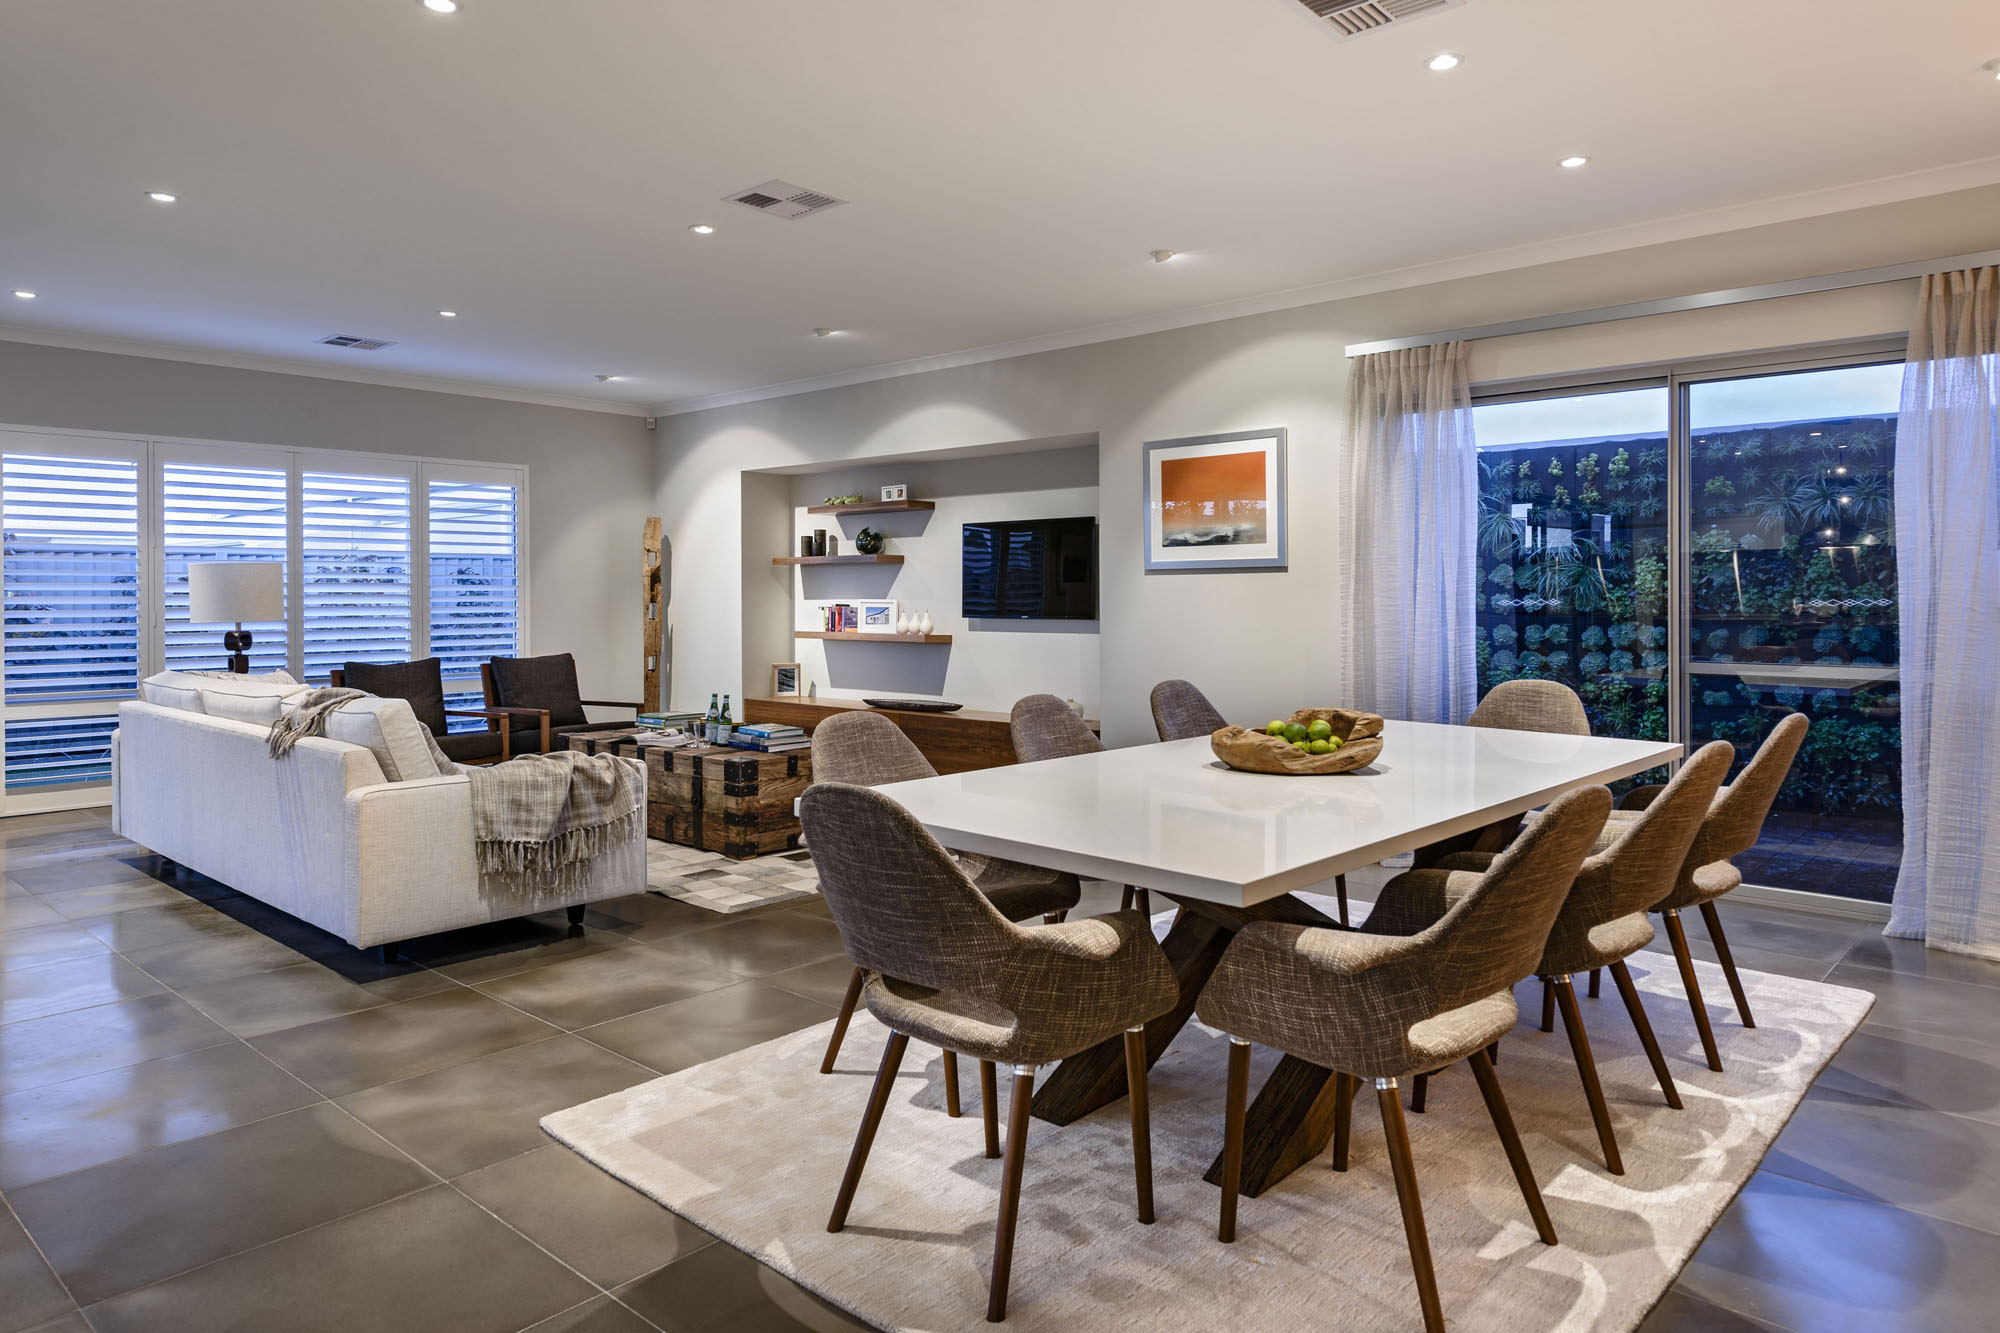 Dining Table, Rug, Open Plan Living, Dining Space, Modern